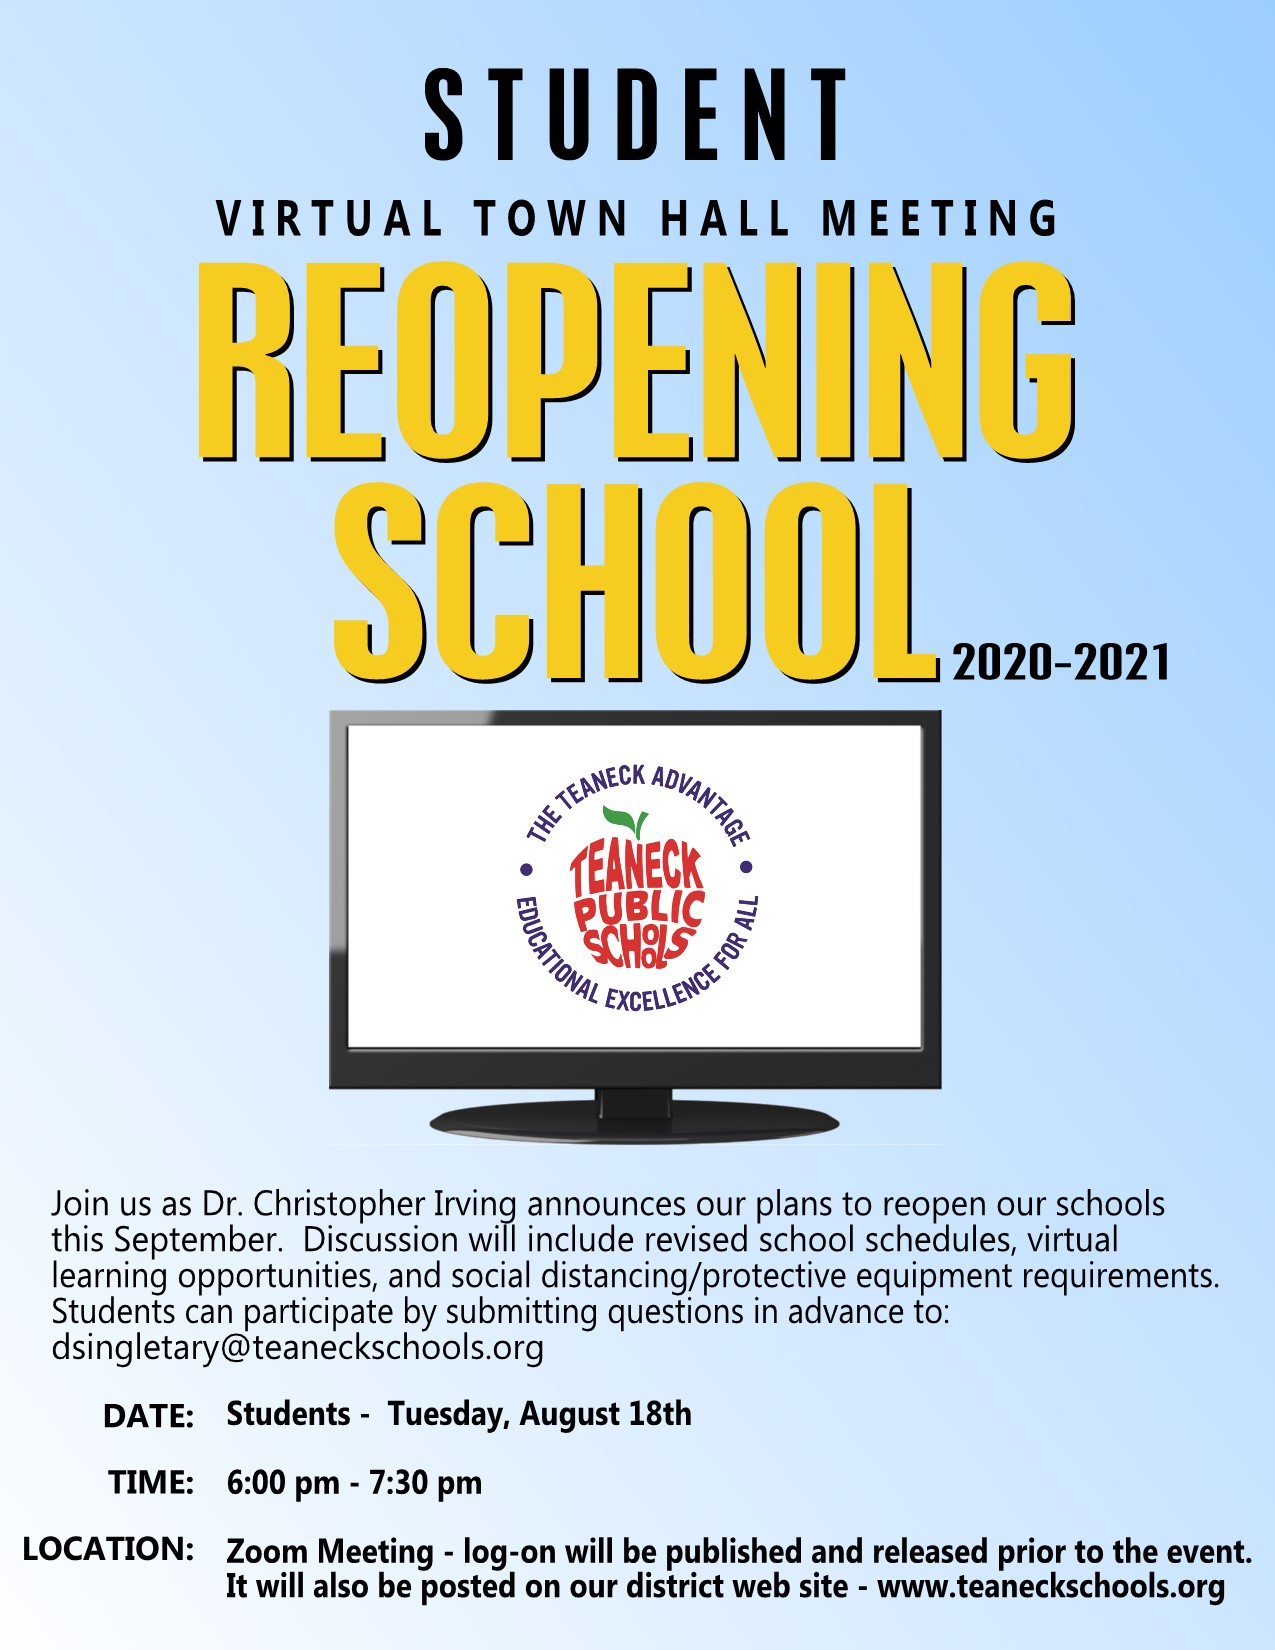 TEANECK TOWN HALL REOPENING STUDENT